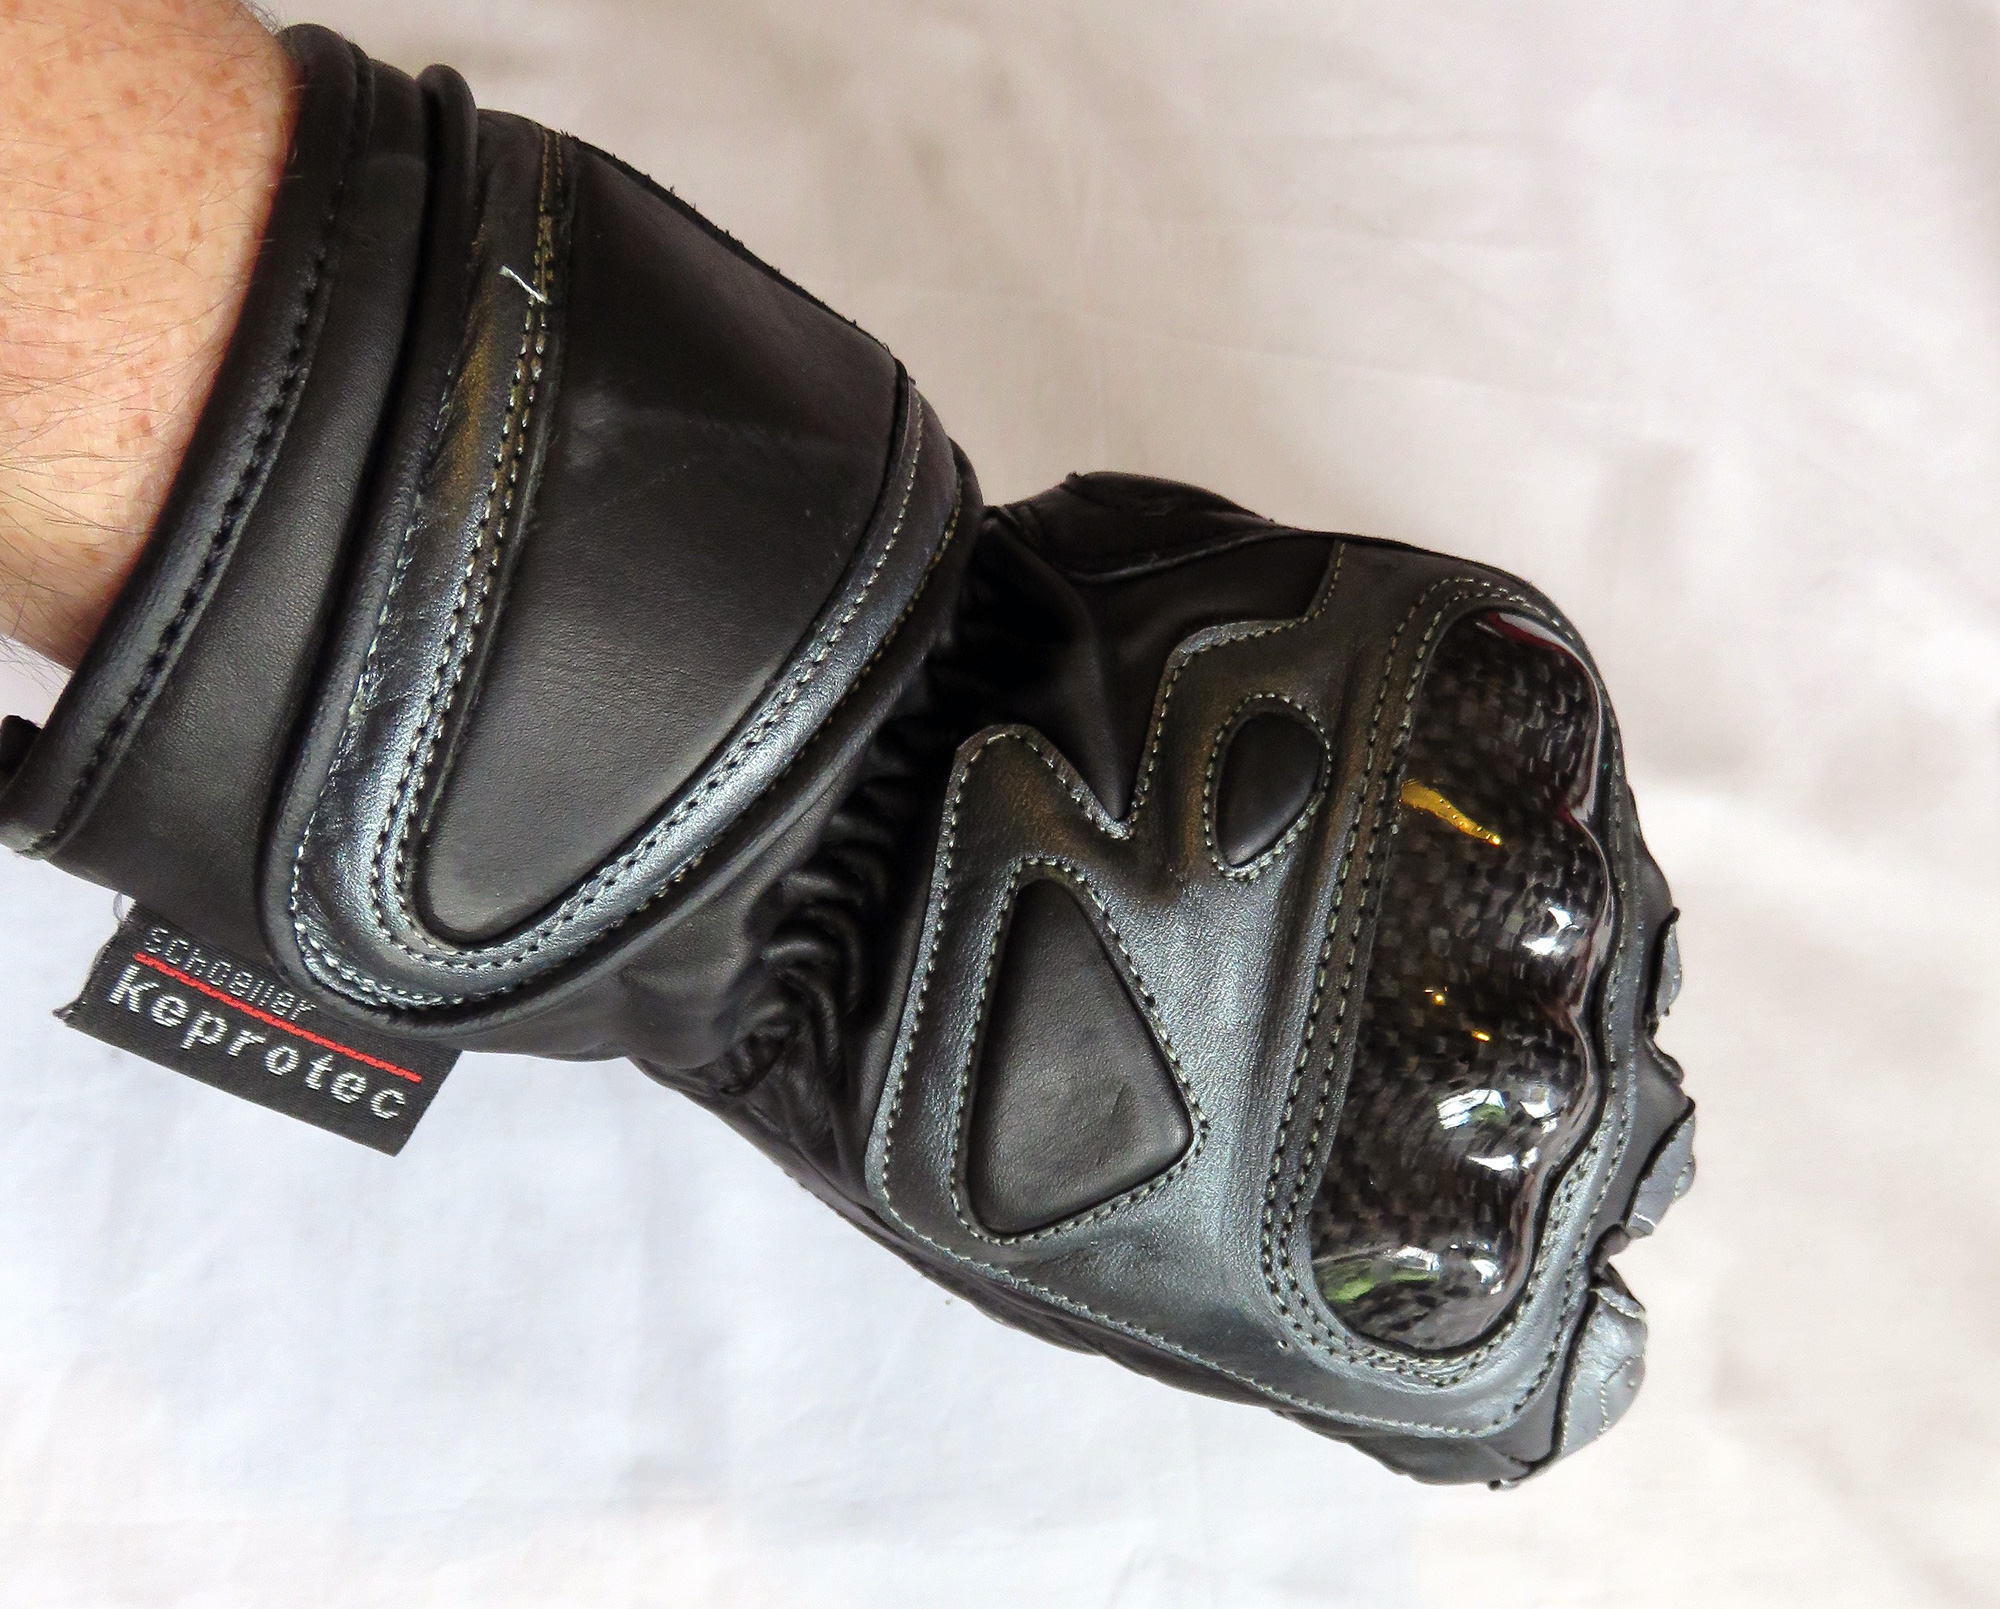 Yamaha motorcycle gloves india - Rnt Leather Motorcycle Gloves Bikereview 15